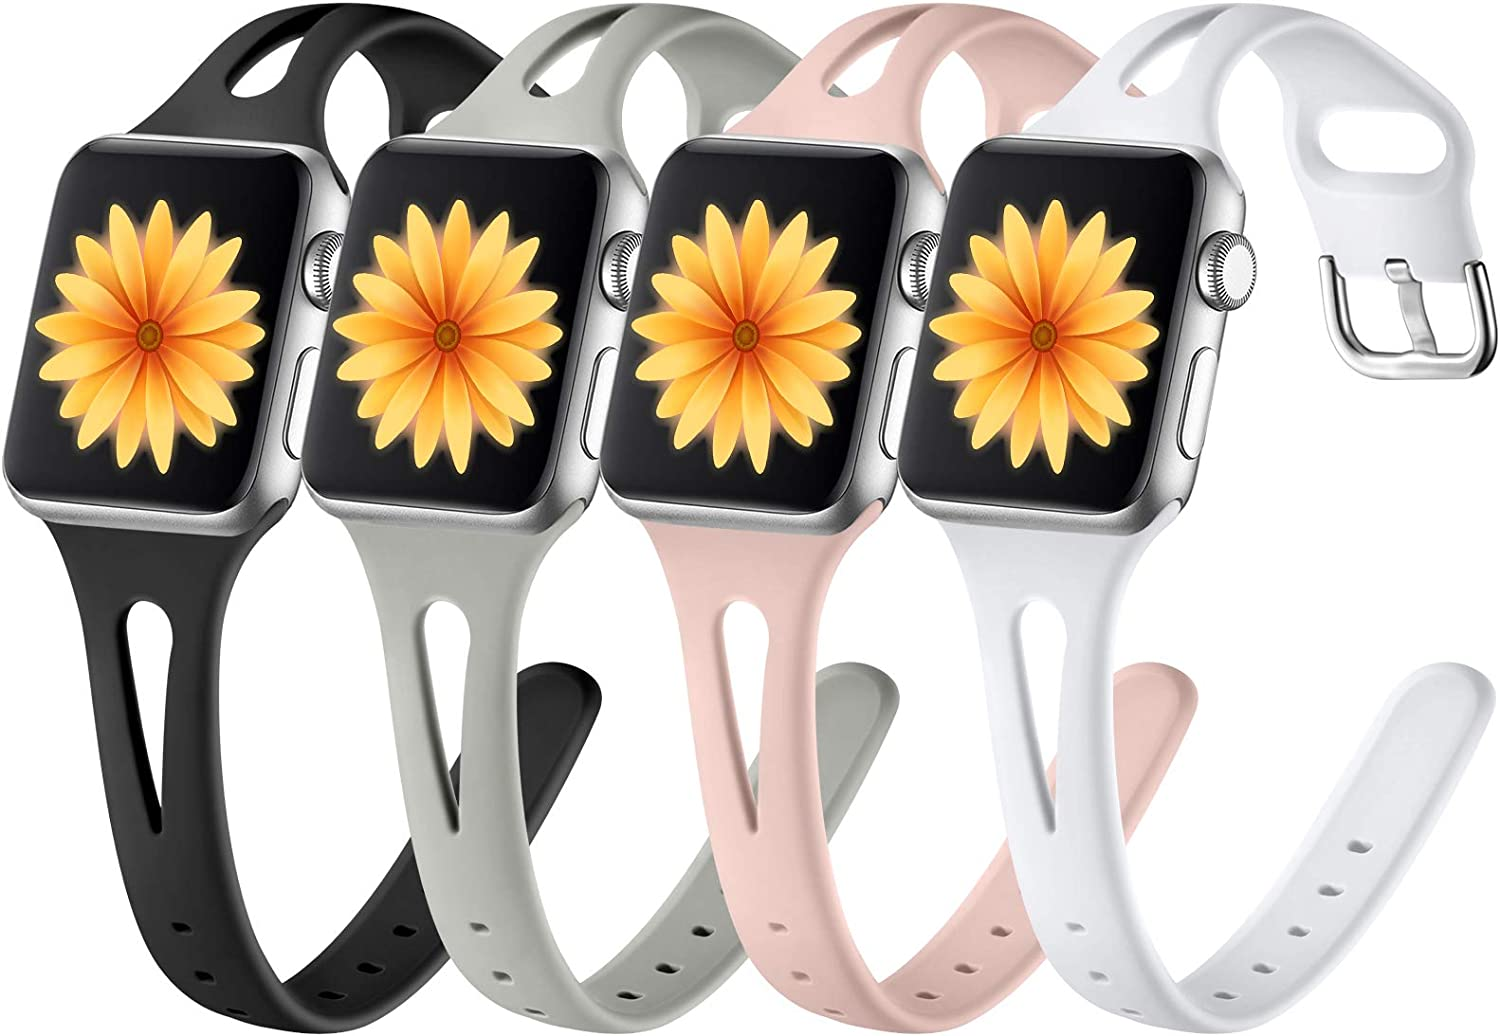 GEAK 4 Pack Compatible with Apple Watch Band 40mm Women iWatch SE & Series 6 5 4 3 2 1, Soft Slim Silicone Sport Accessories Strap for Apple Watch Band 38mm Women Men Balck/Gray/White/Sand Pink